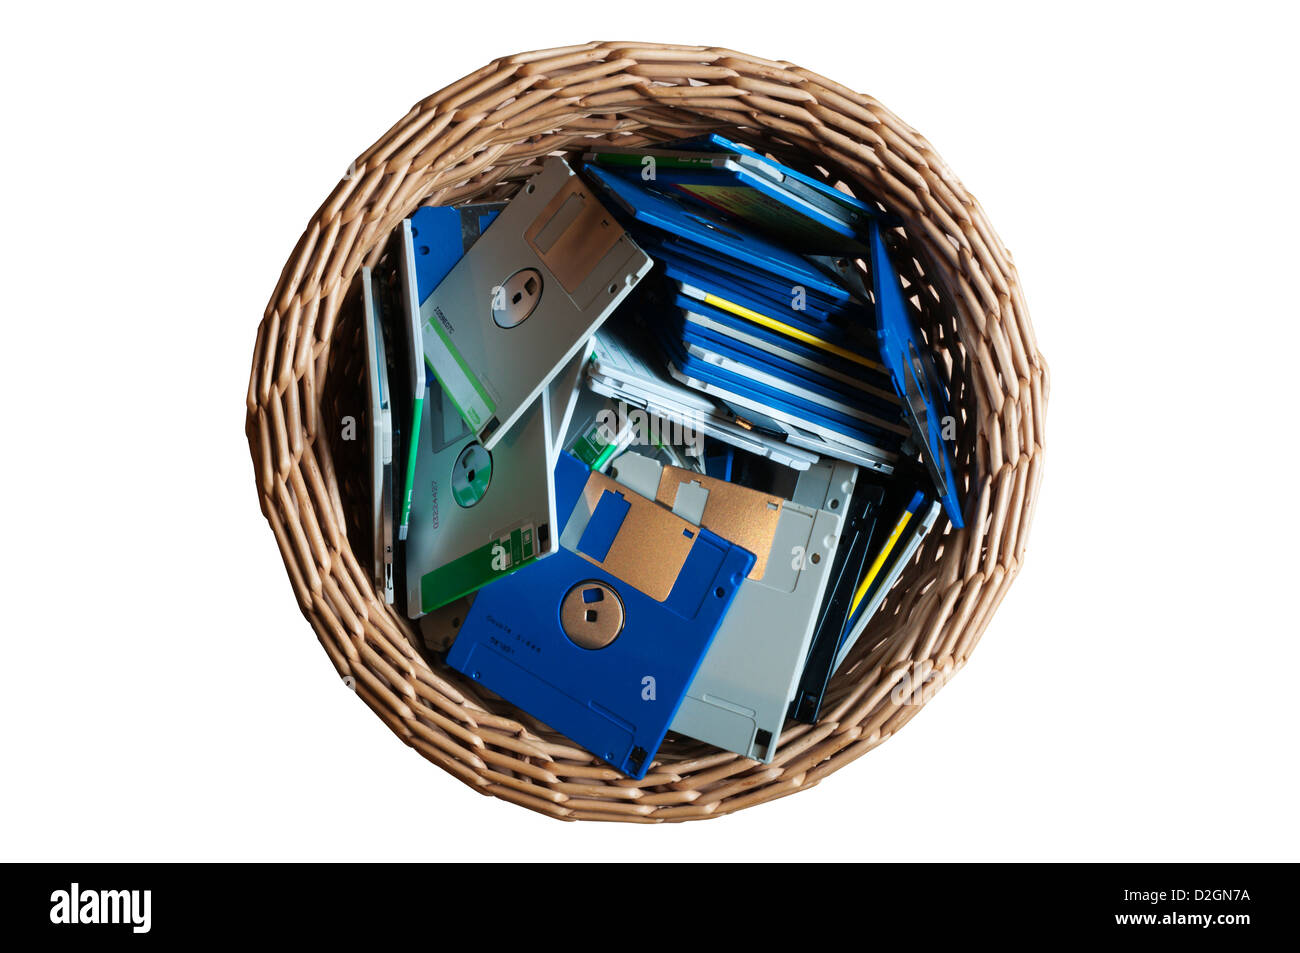 Old 3.5' computer disks thrown away in a waste paper basket. - Stock Image